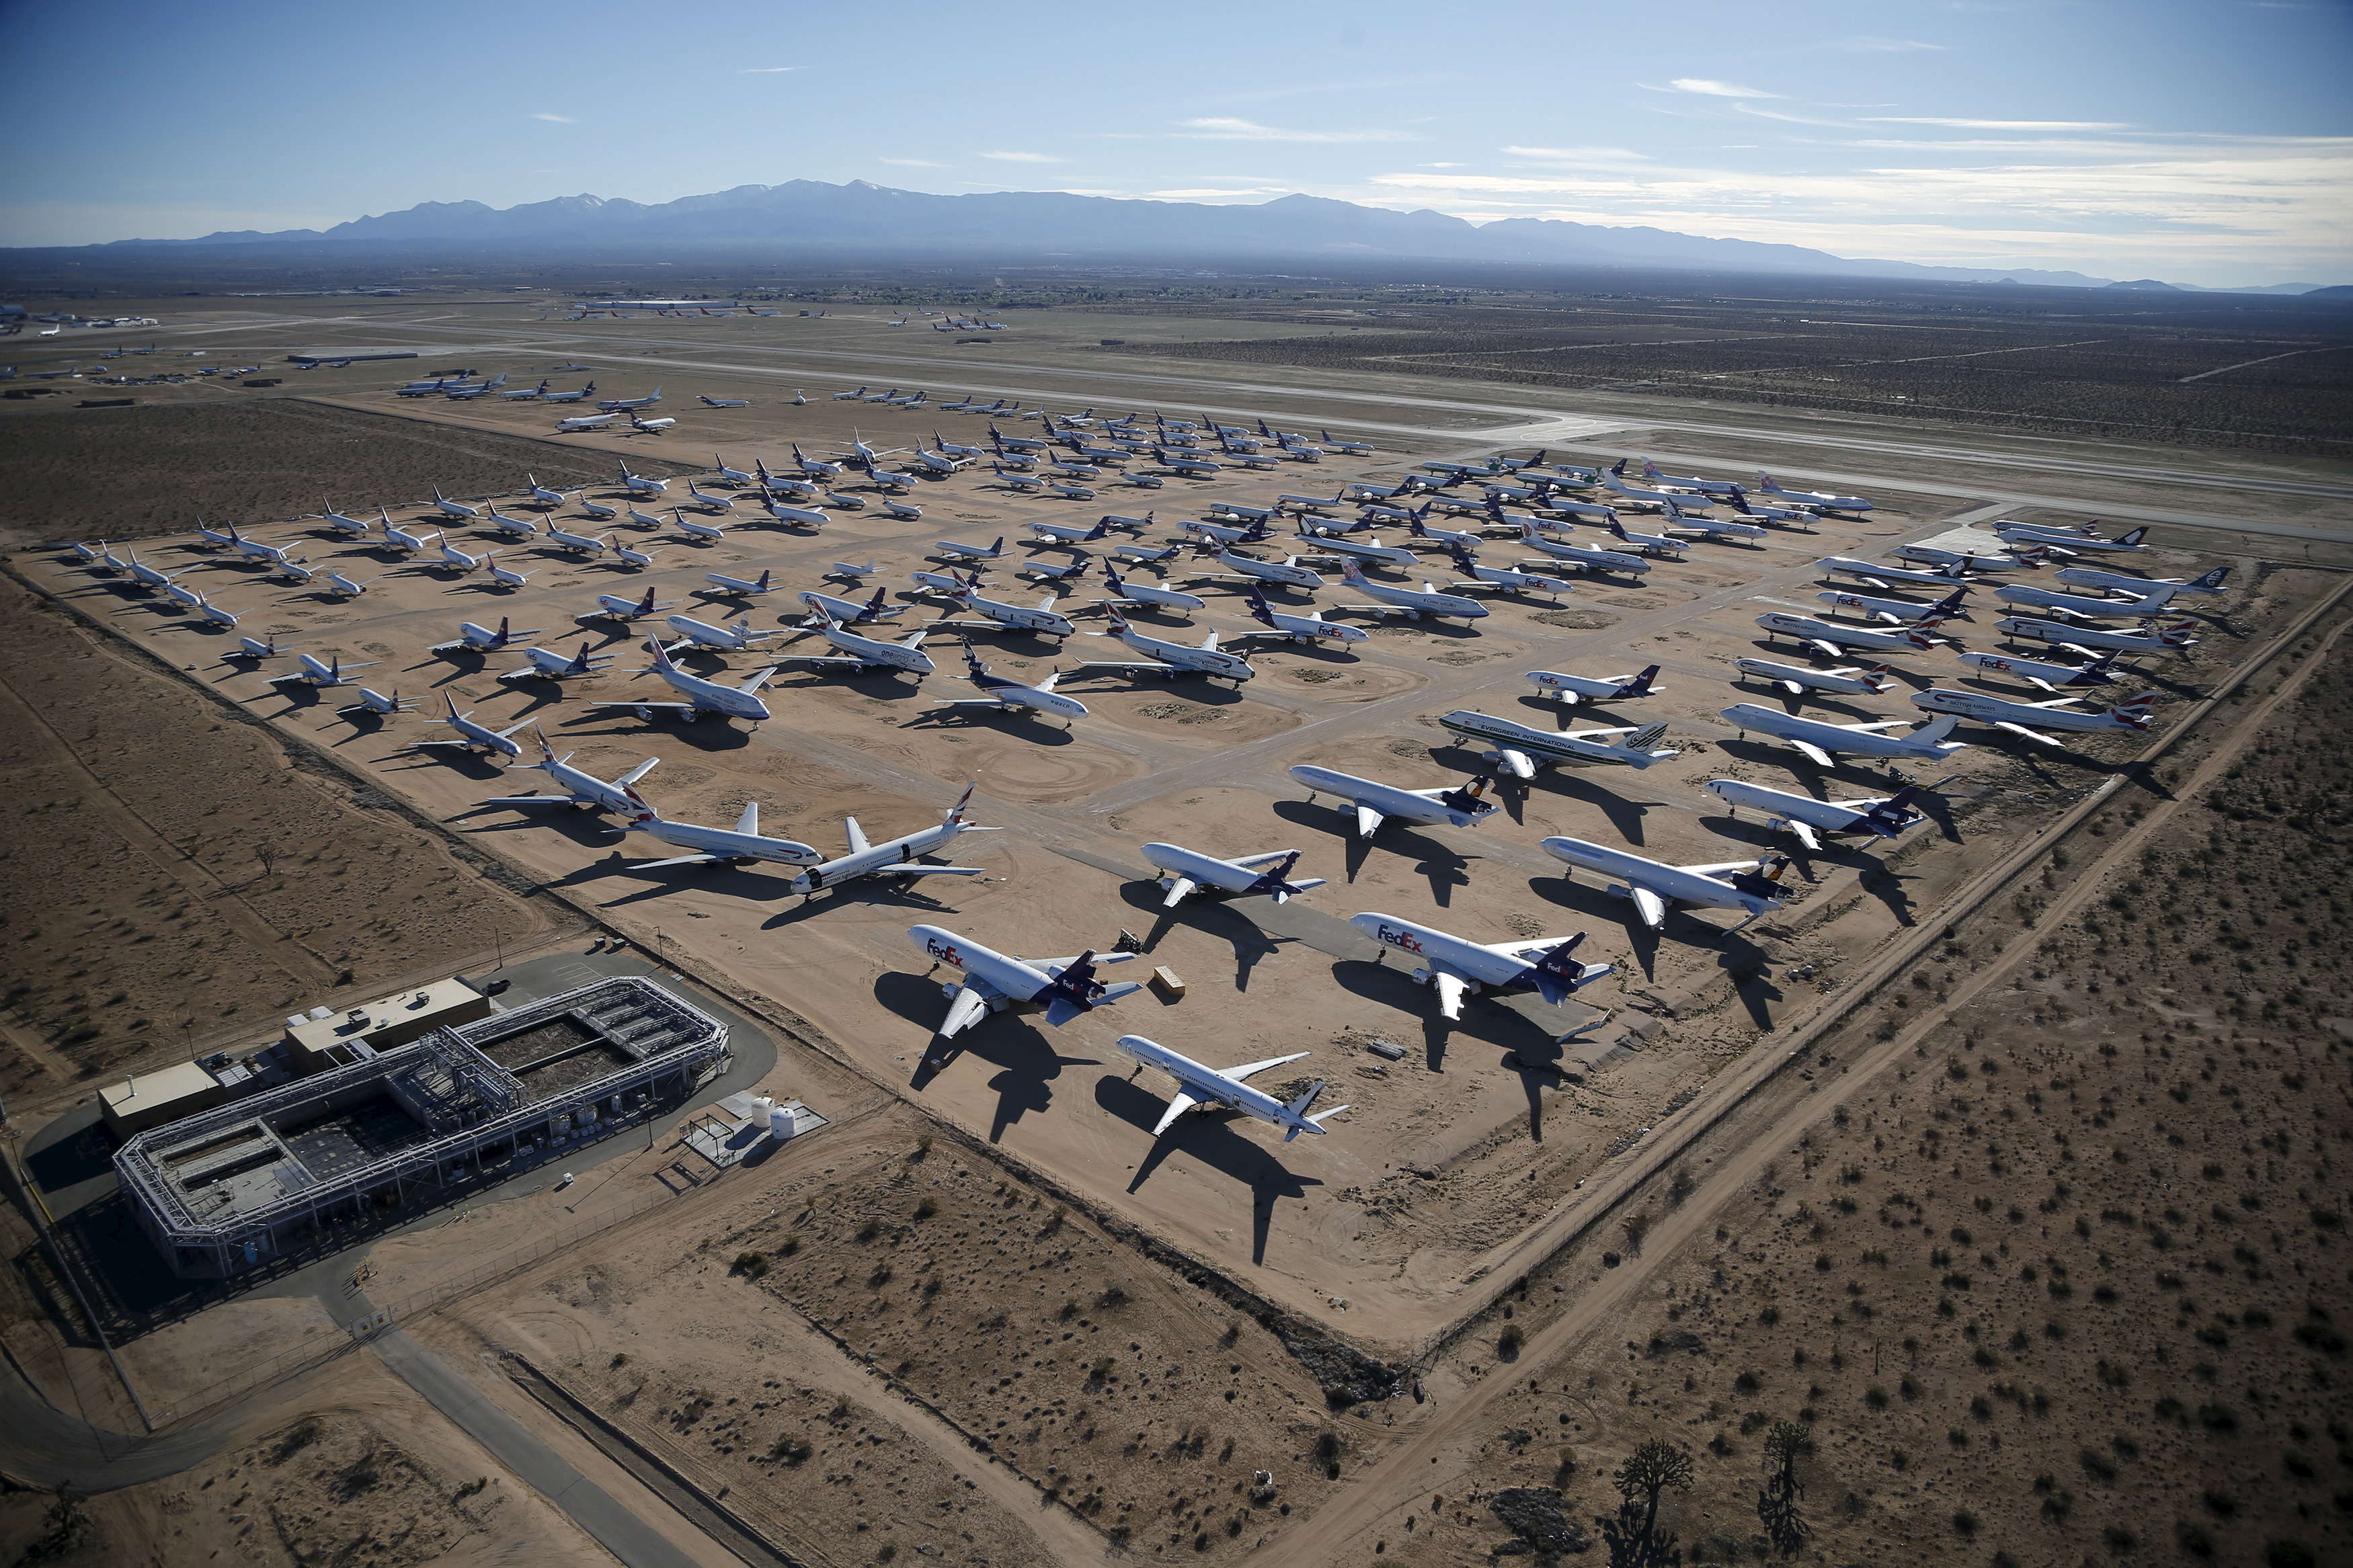 The Southern California Logistics Airport is located in Victorville, California ...